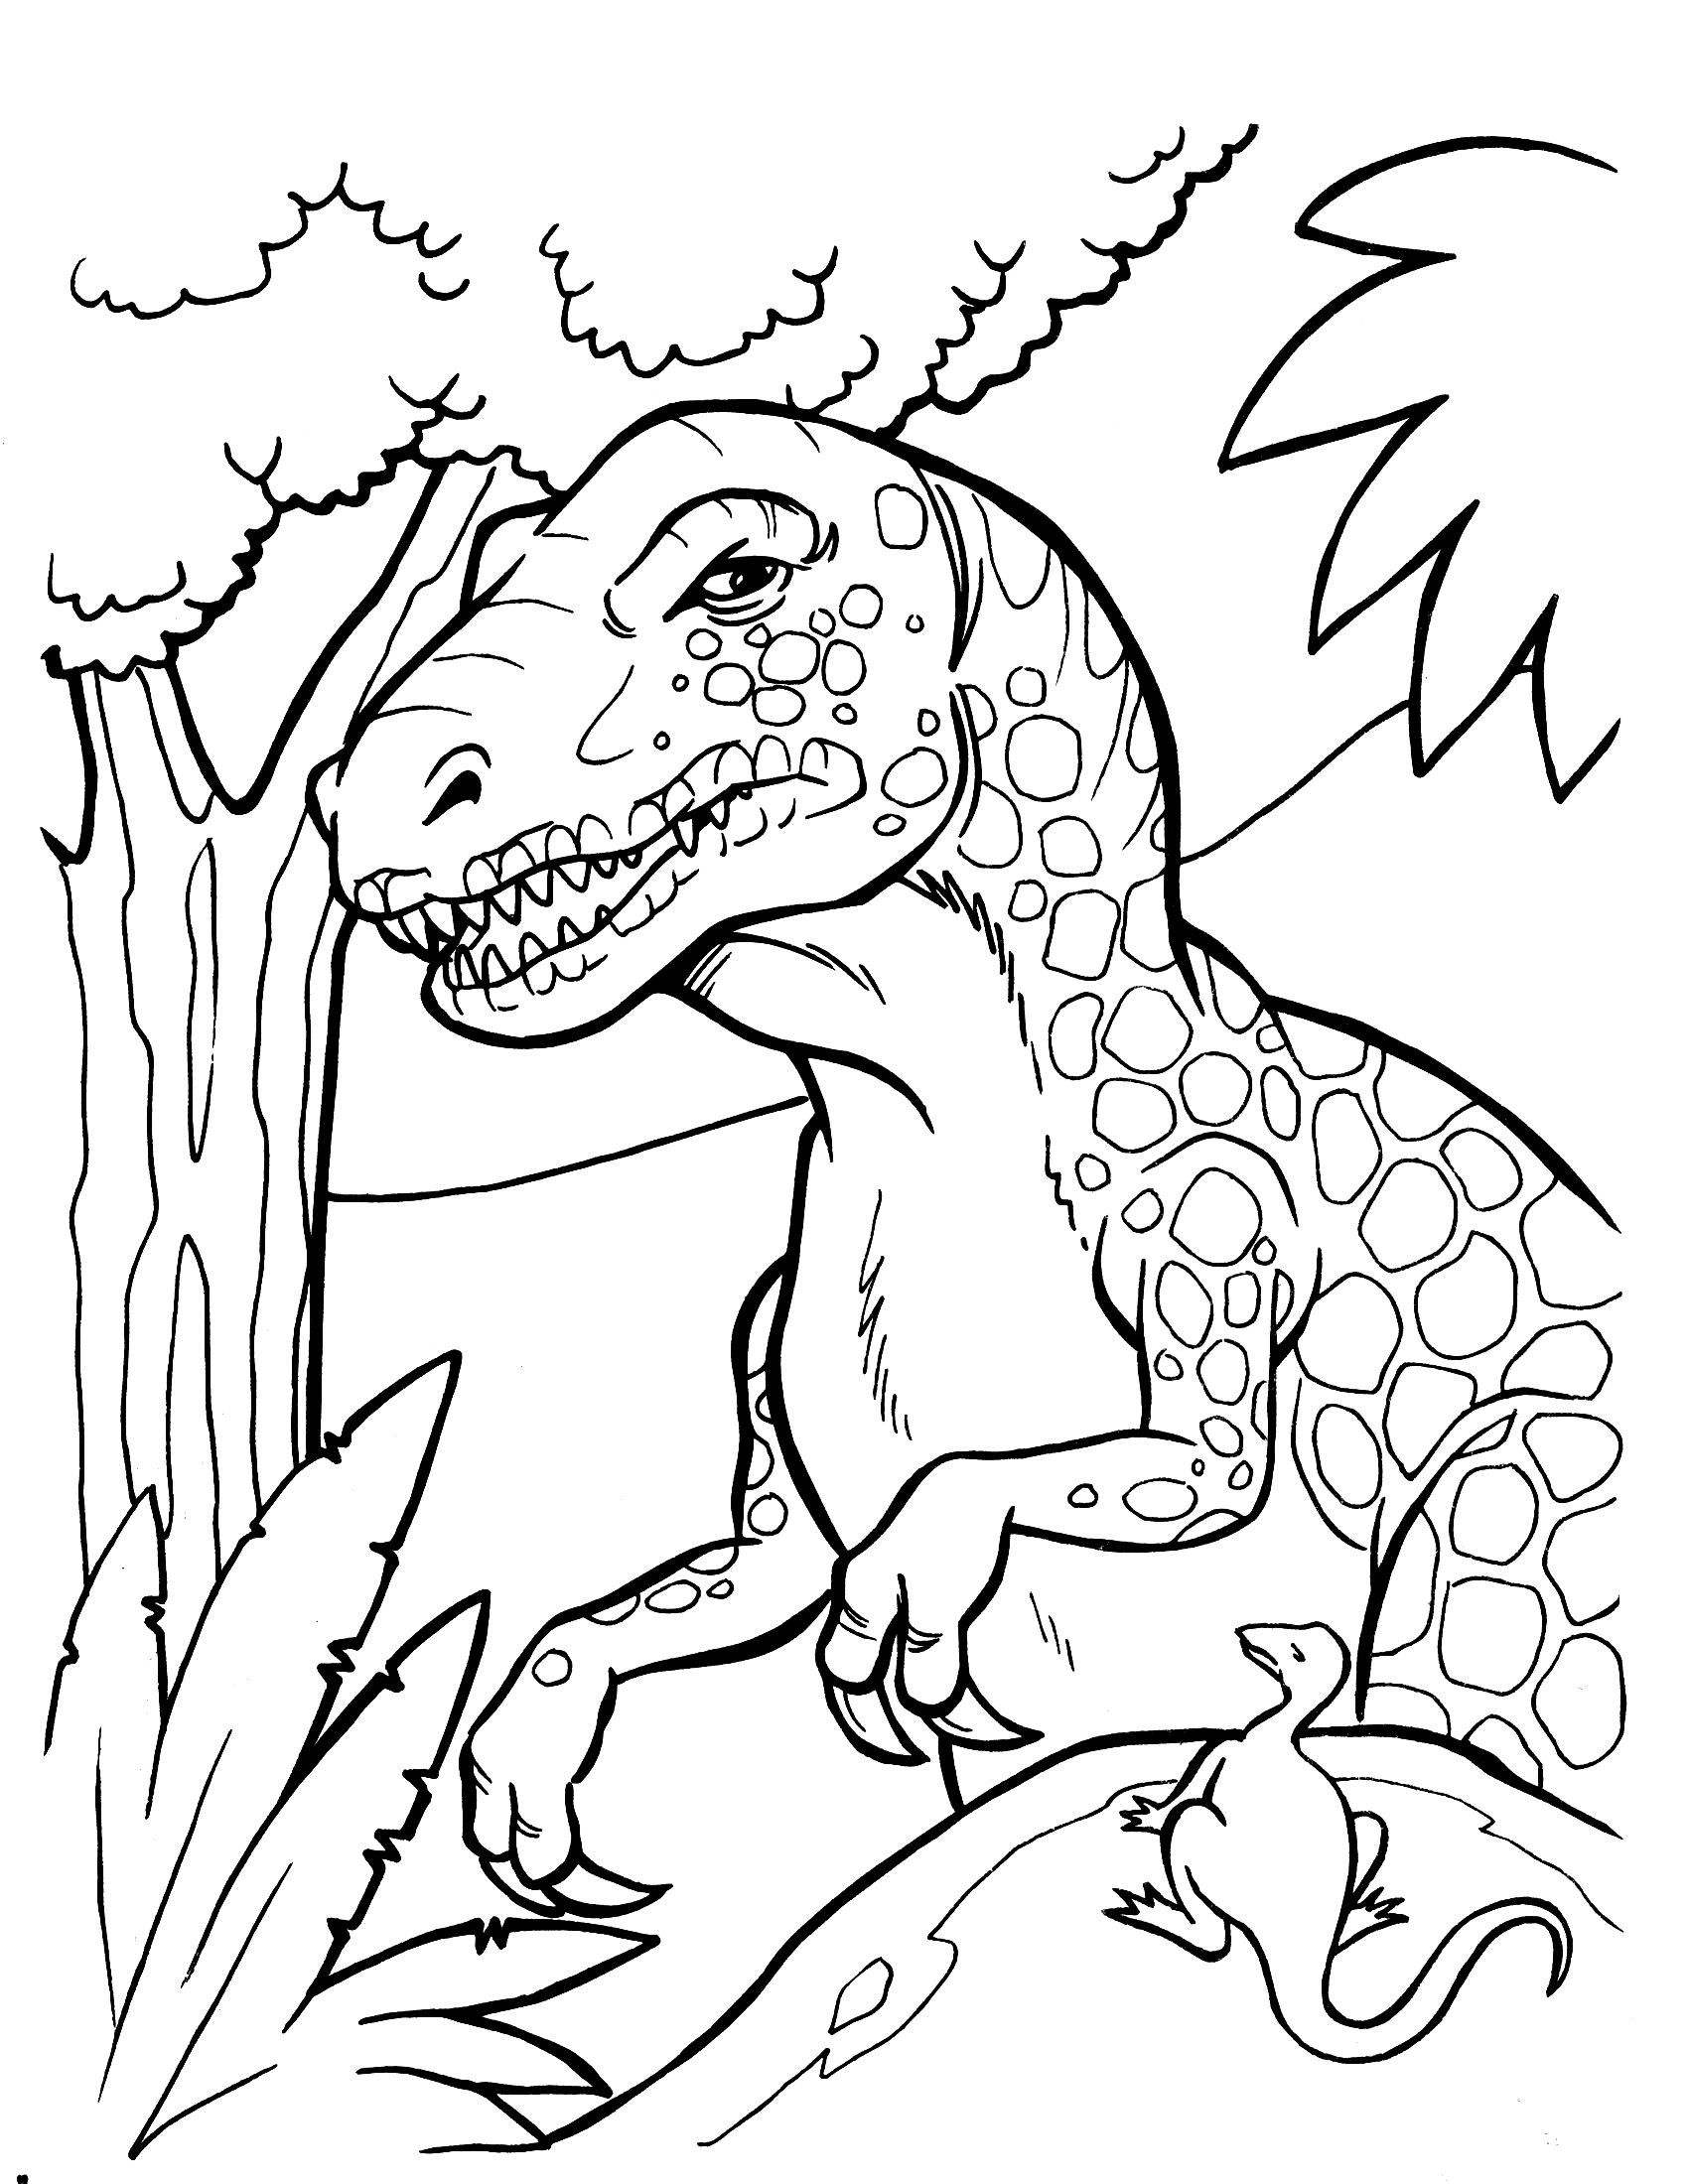 dinosaur colouring pages printable coloring pages from the animated tv series dinosaur train colouring dinosaur pages printable